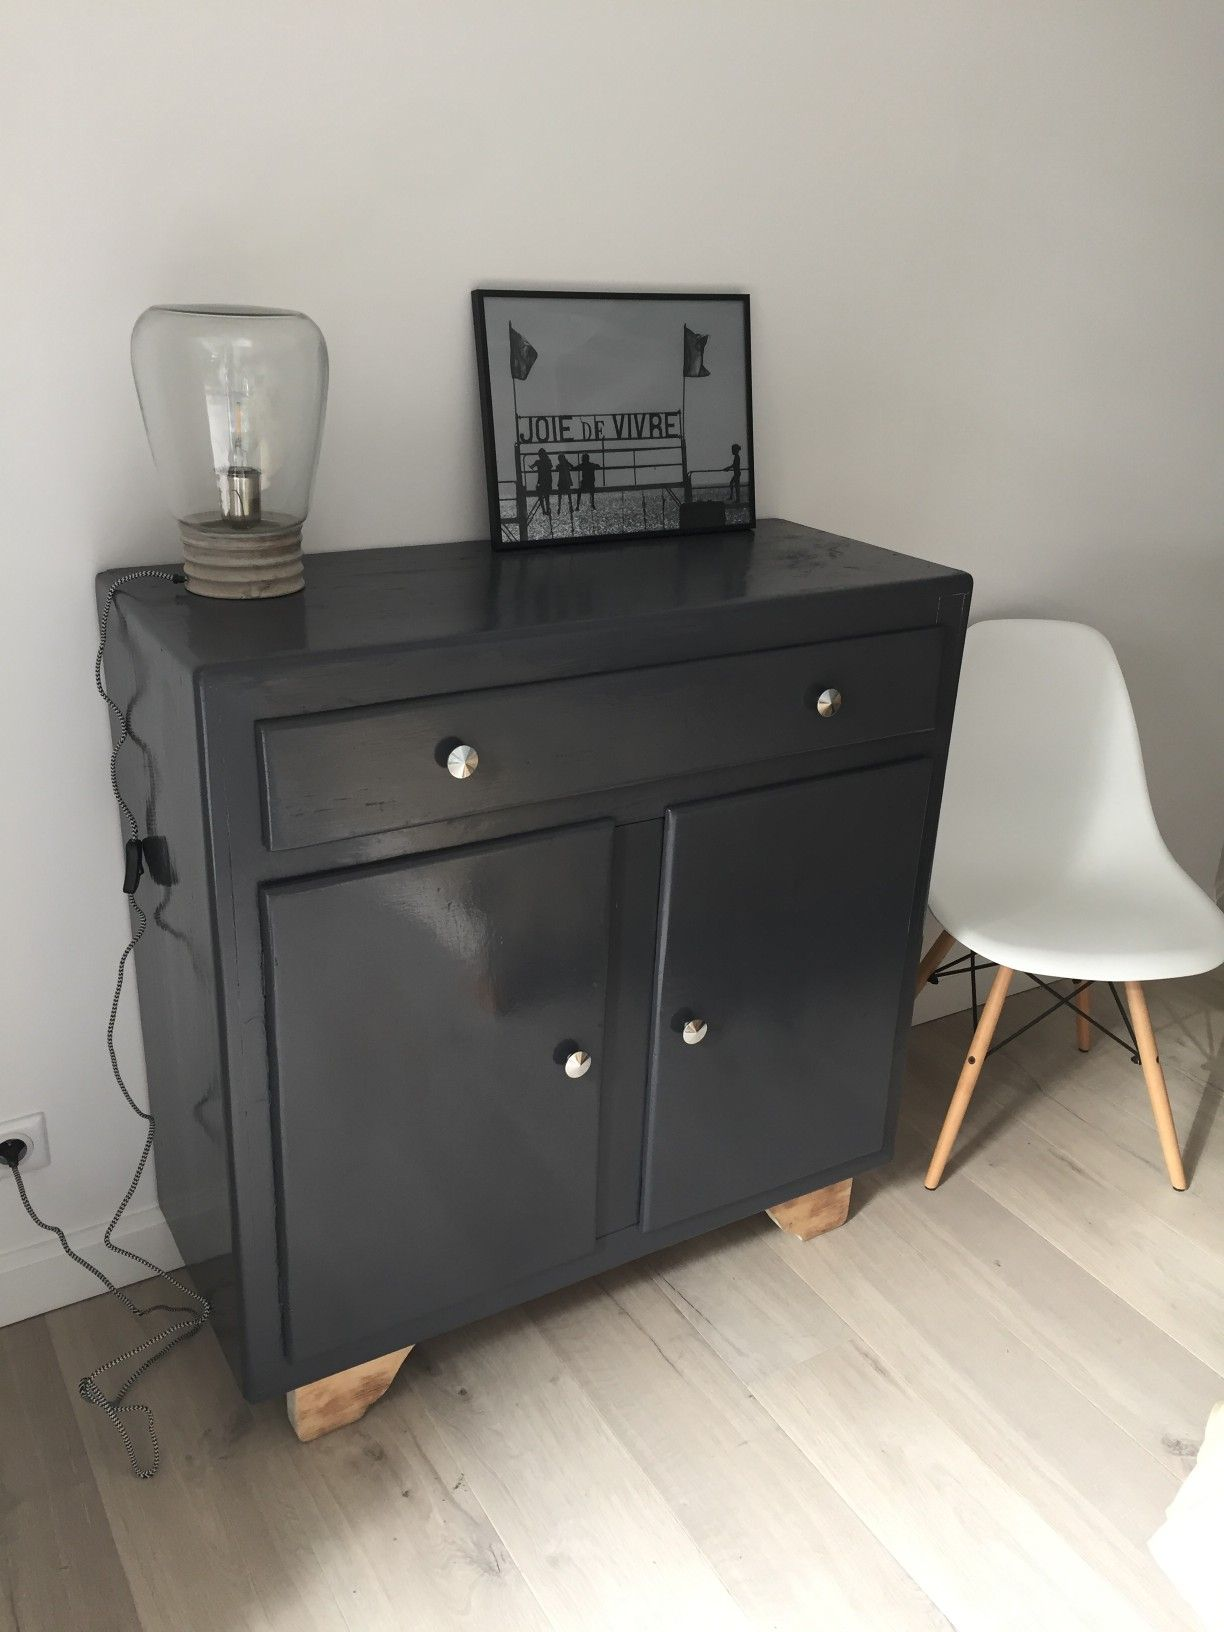 Commode Gris Anthracite Commode Style Mado Relookée Repeinte En Gris Anthracite Formes